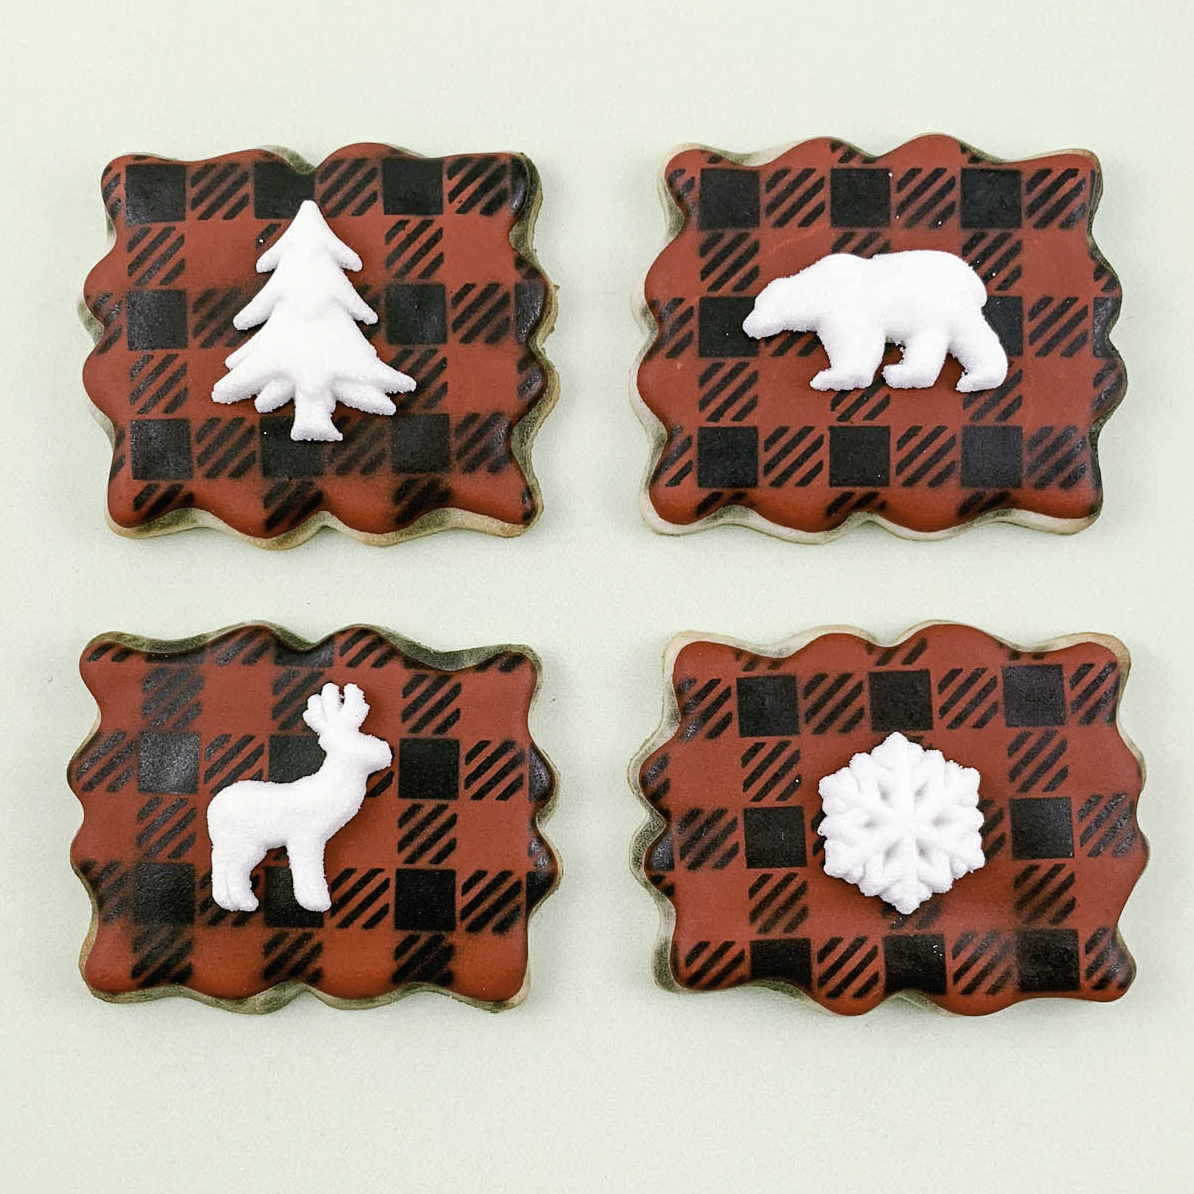 Buffalo Plaid Airbrushed Sugar Cookies